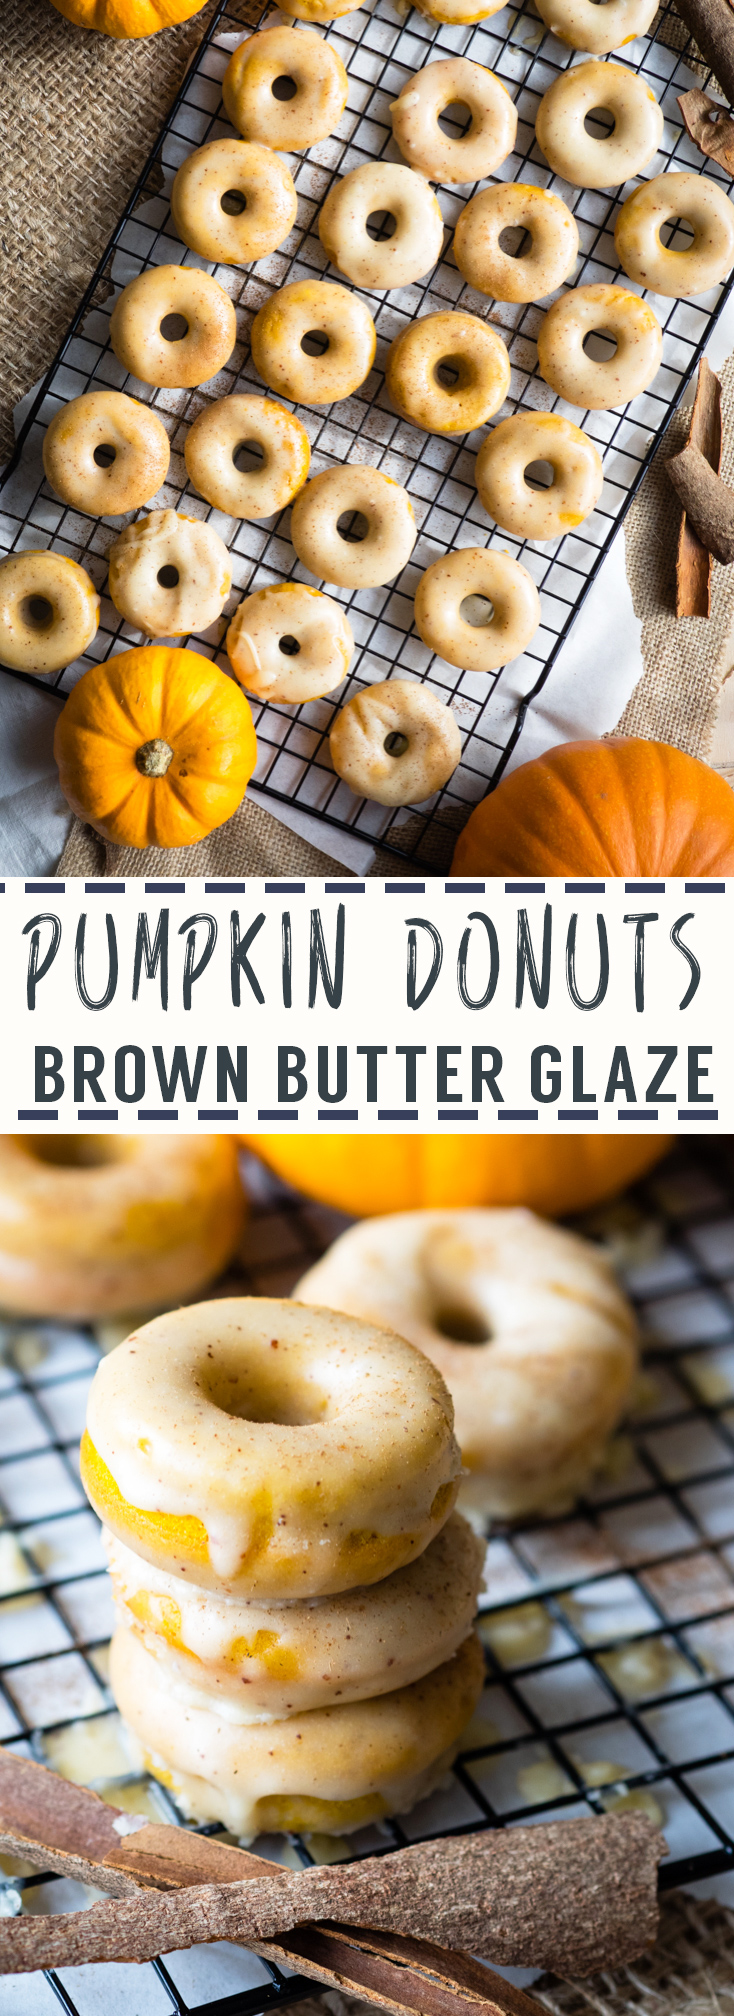 Baked Pumpkin Donuts with Brown Butter Glaze | The Worktop